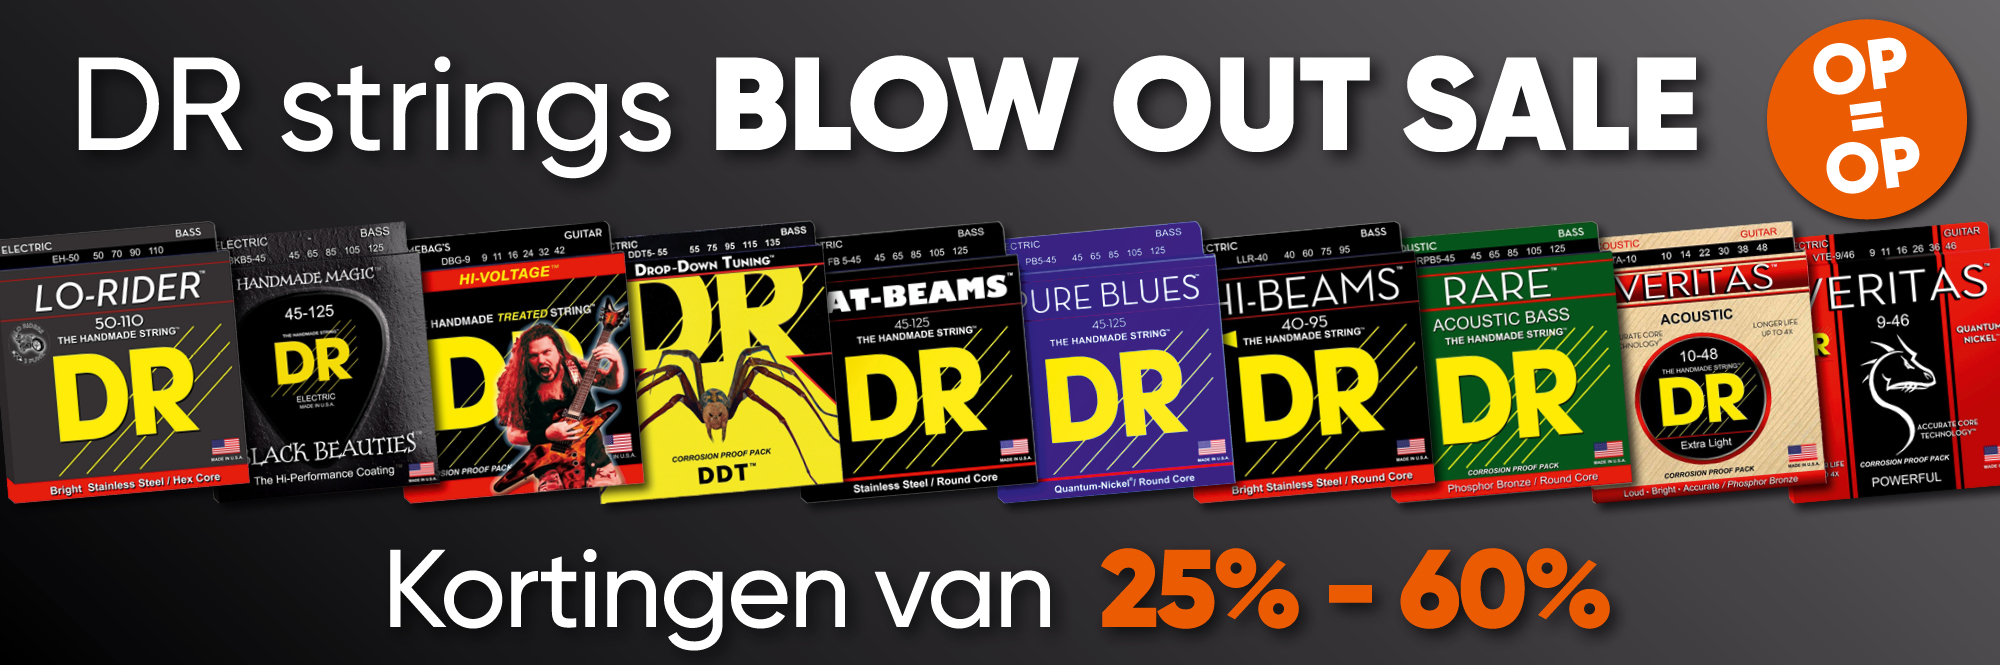 DR Strings Blowout Sale! Tot 60% korting op DR gitaarsnaren en bassnaren!